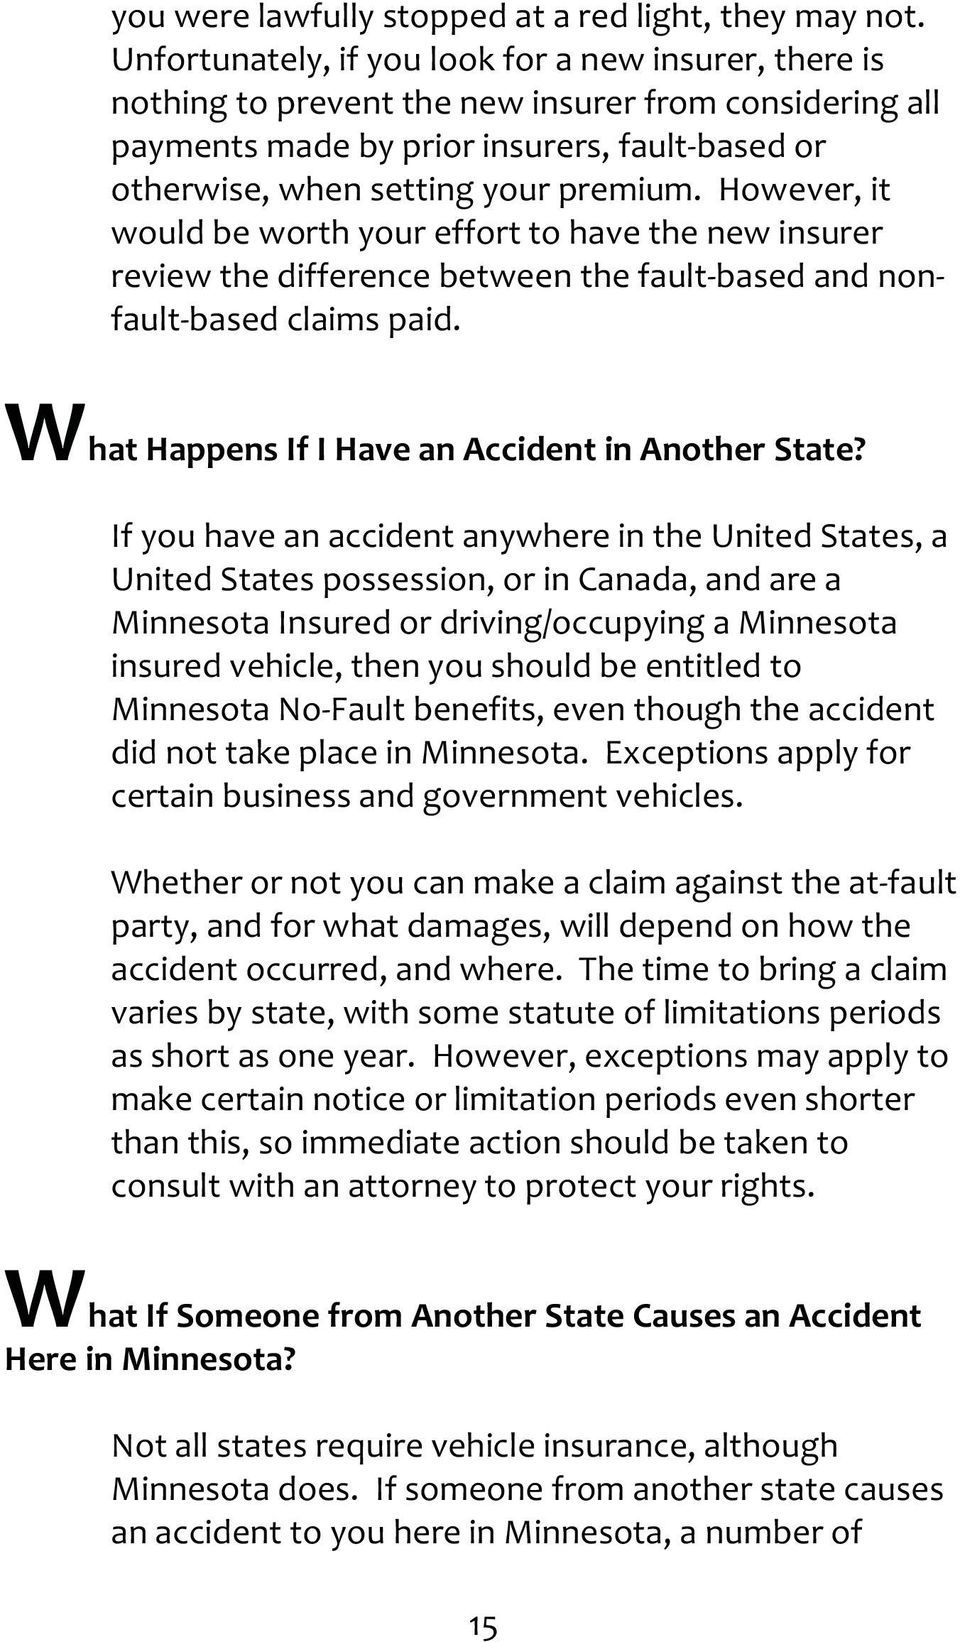 However, it would be worth your effort to have the new insurer review the difference between the fault-based and nonfault-based claims paid. What Happens If I Have an Accident in Another State?